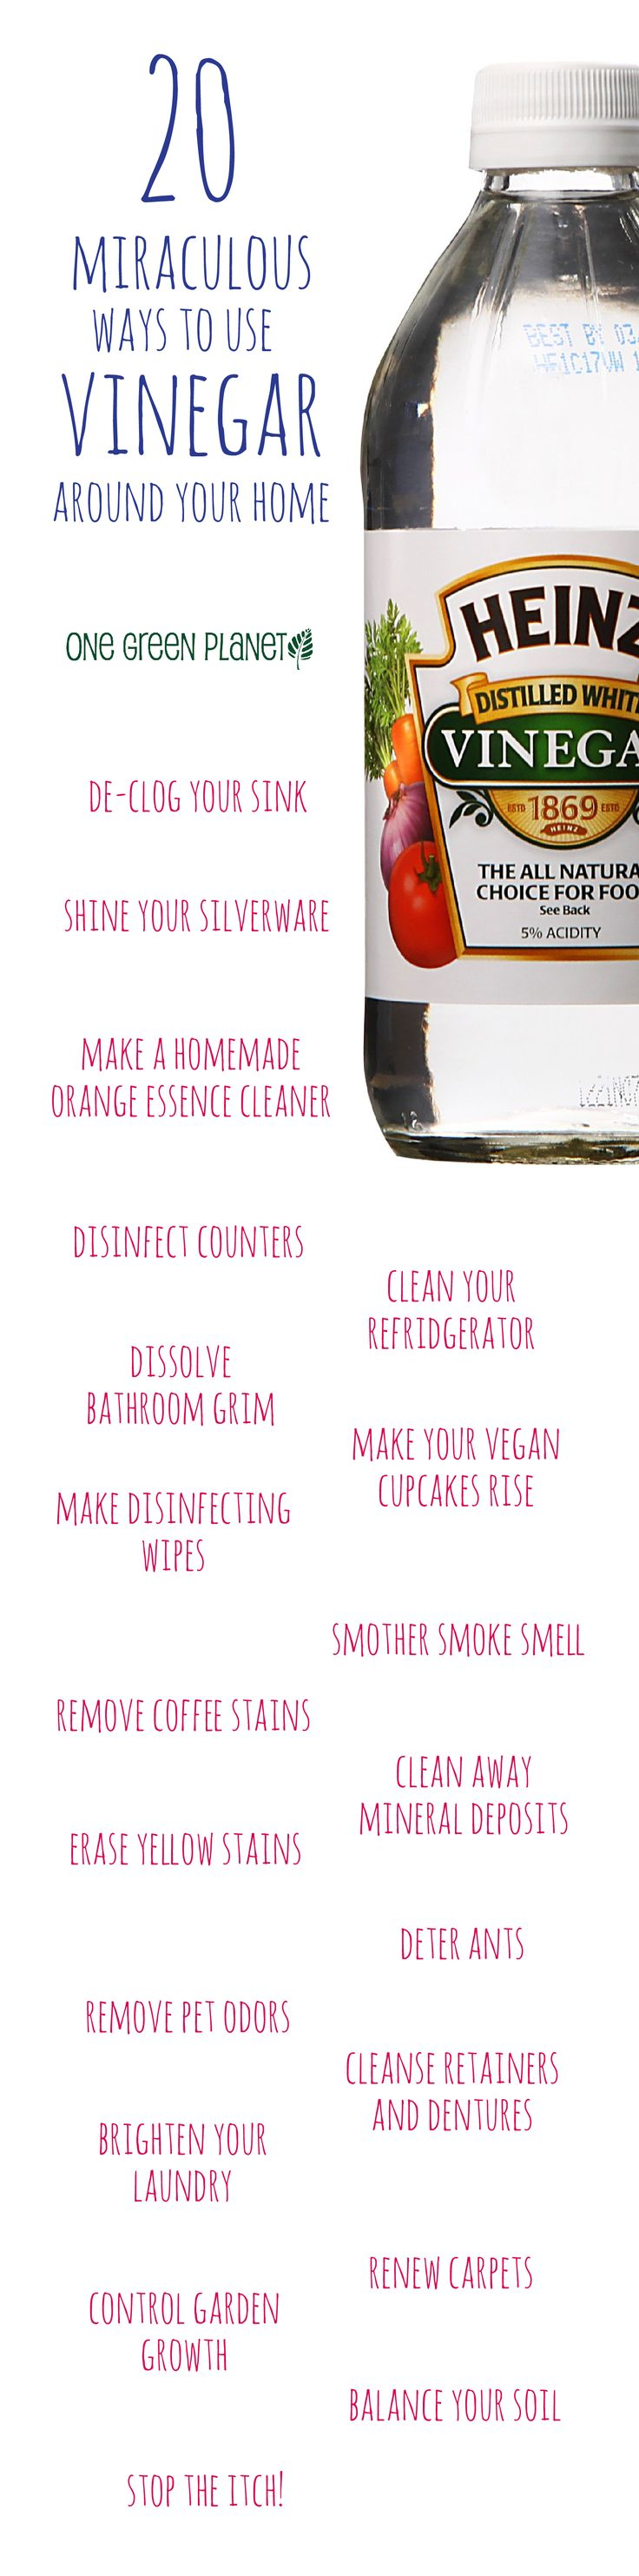 PLEASE do NOT consume synthesized vinegar. Use only organic Apple Cider Vinegar in food. Use the cheap synthetic vinegar for all of the household uses listed.  Also: you can get a good deal of the pesticides off non-organic produce by soaking them in a sinkful of water into which you add: 1/2 cup Vinegar (synthetic is fine for this use as you'll rinse it off), 1 Tbs. white Salt (ditto. White salt isn't for eating, but you'll wash it off), 2 Tbs. Baking Soda.